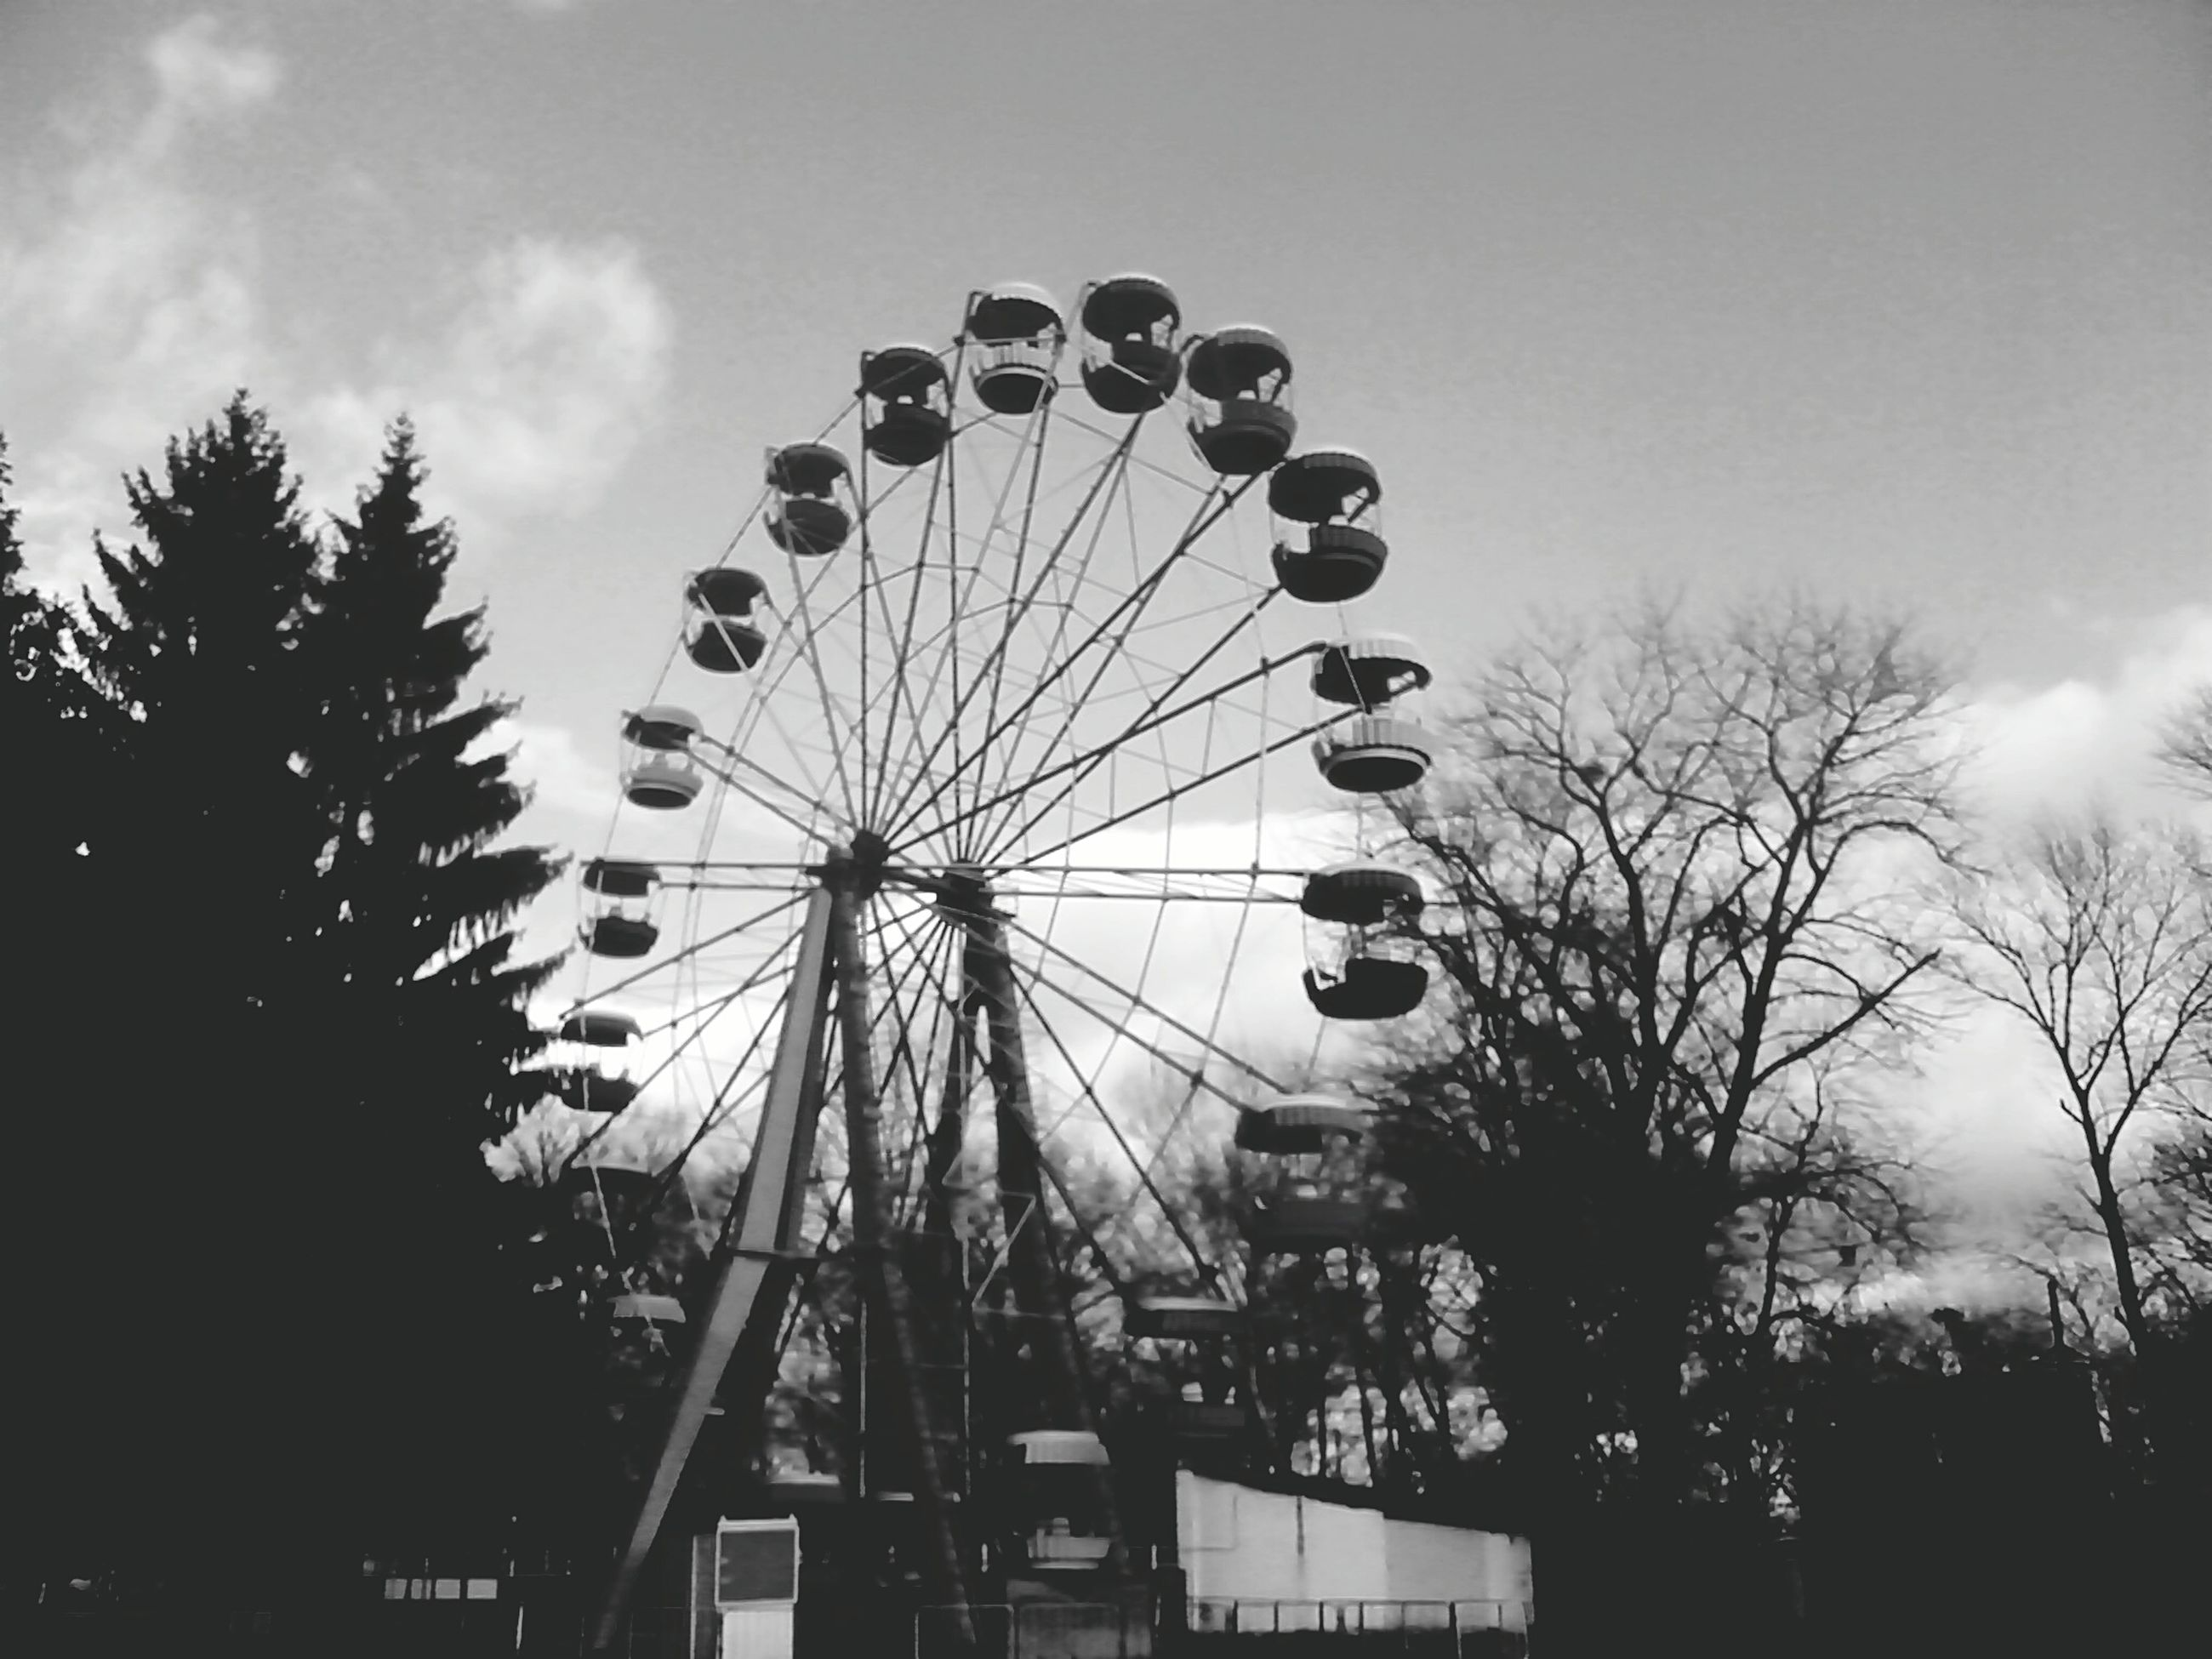 low angle view, ferris wheel, amusement park, amusement park ride, arts culture and entertainment, sky, tree, silhouette, built structure, circle, cloud - sky, outdoors, architecture, day, large, fairground, cloud, fun, no people, fairground ride